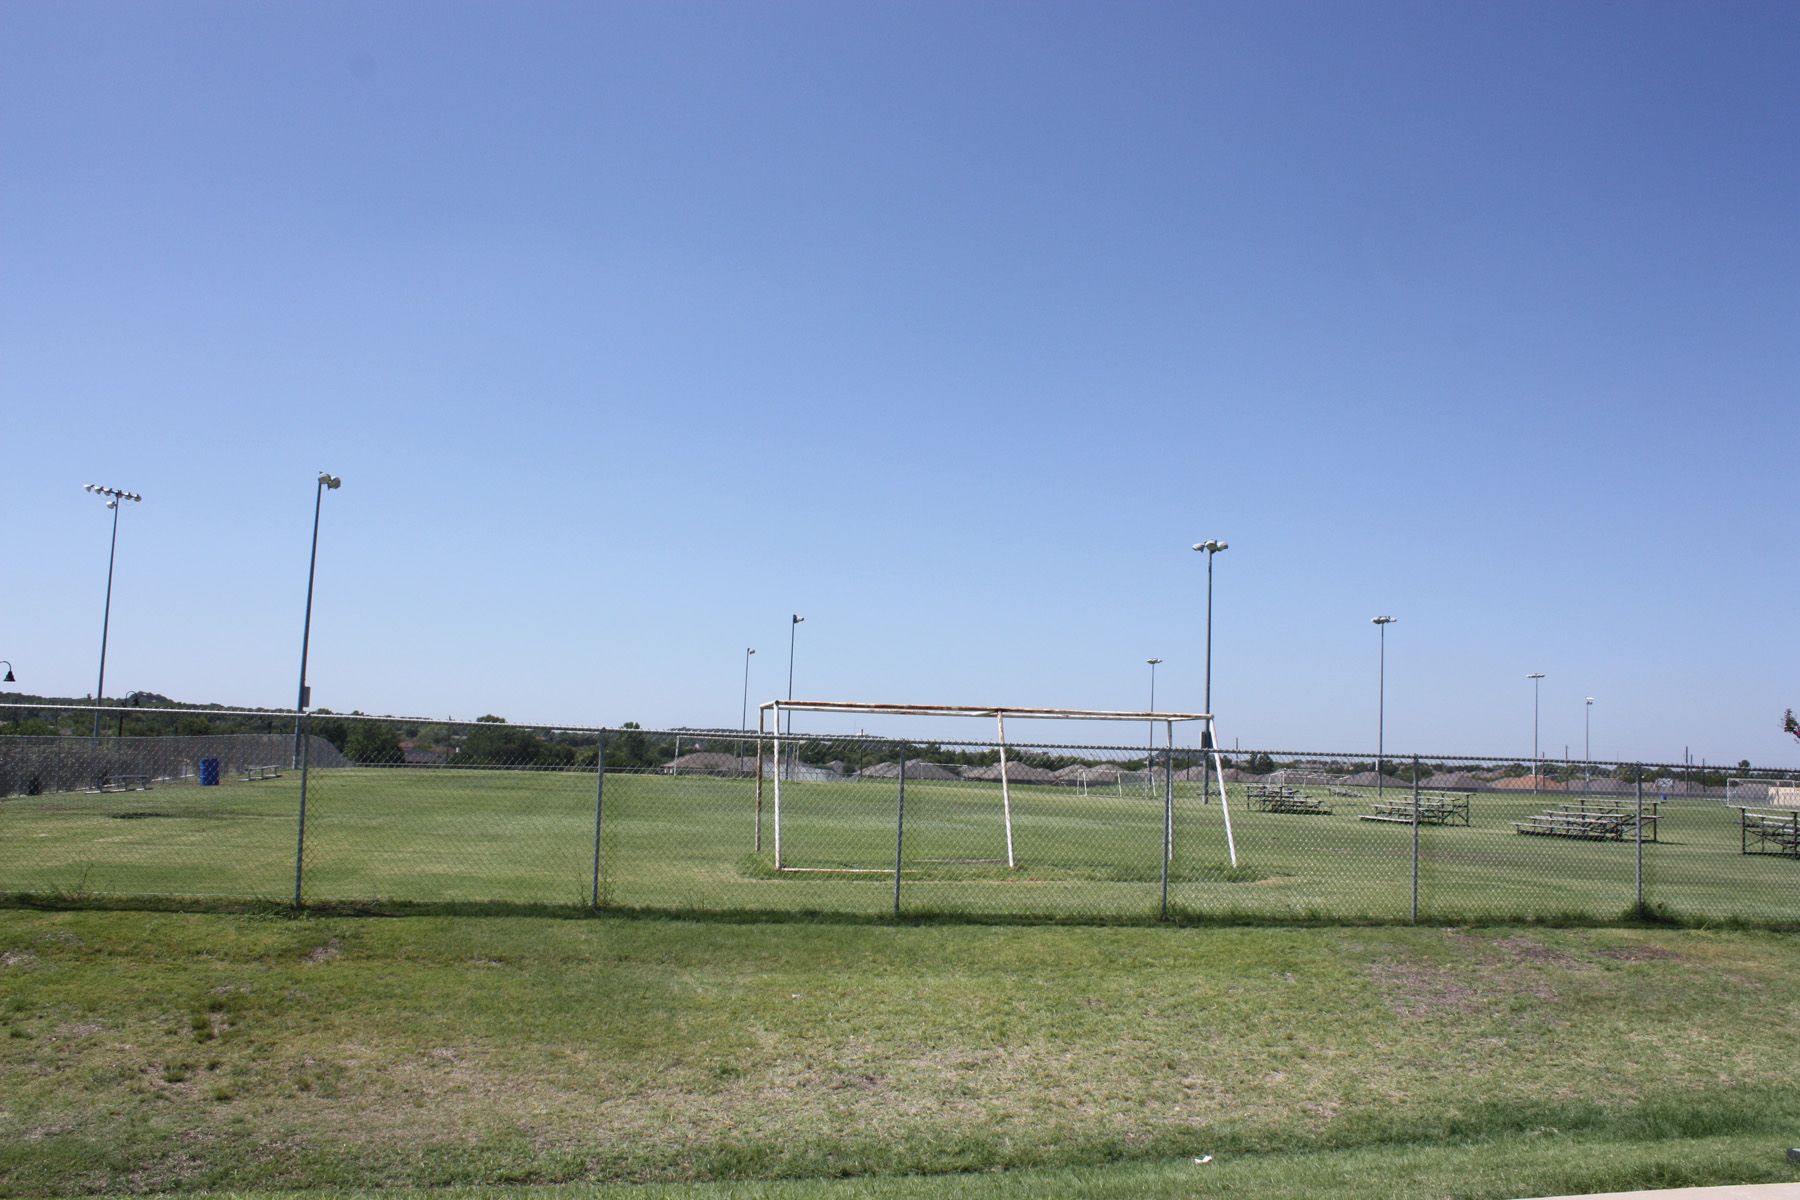 Killeen's Soccer Field